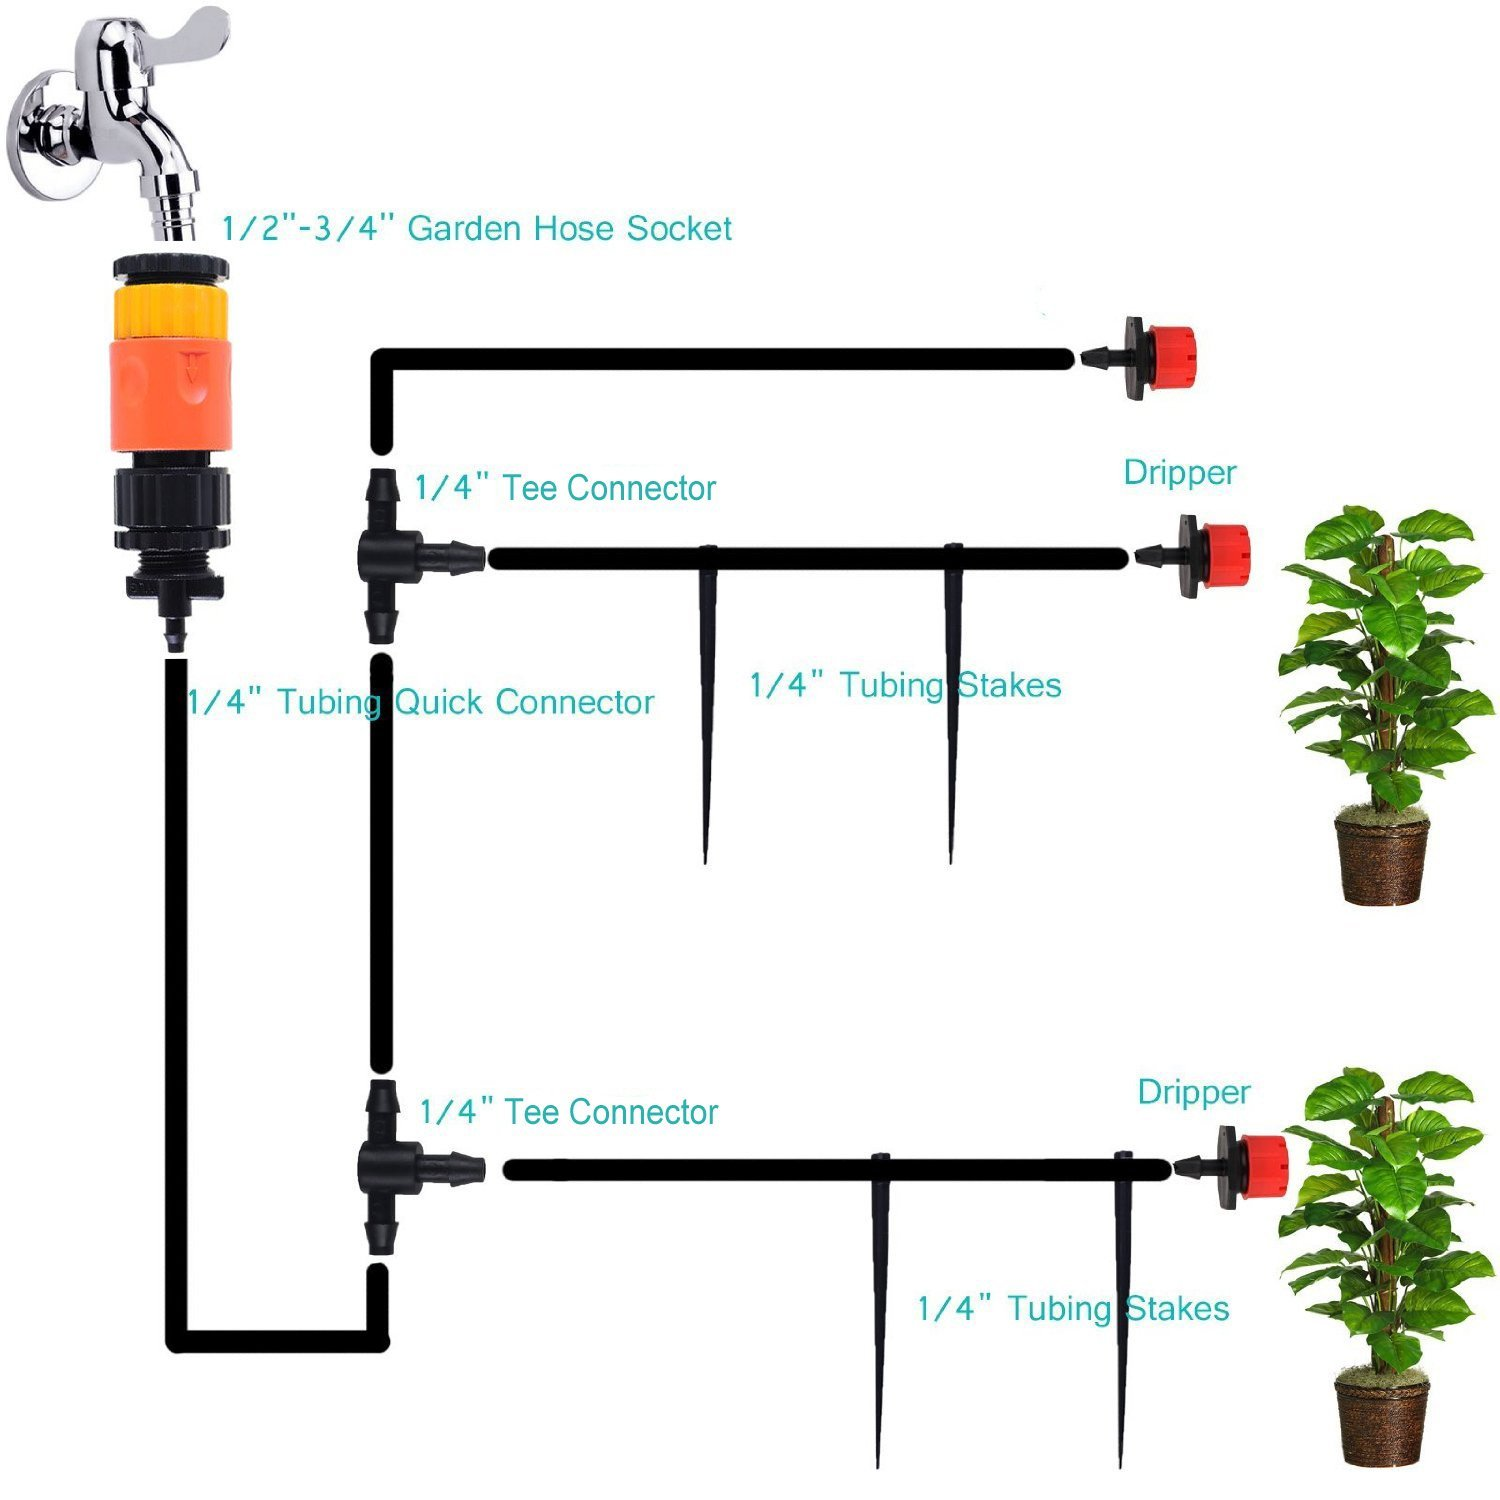 32Feet Drip Irrigation System Kits For Outdoor Garden Greenhouse Automatic Watering Equipment